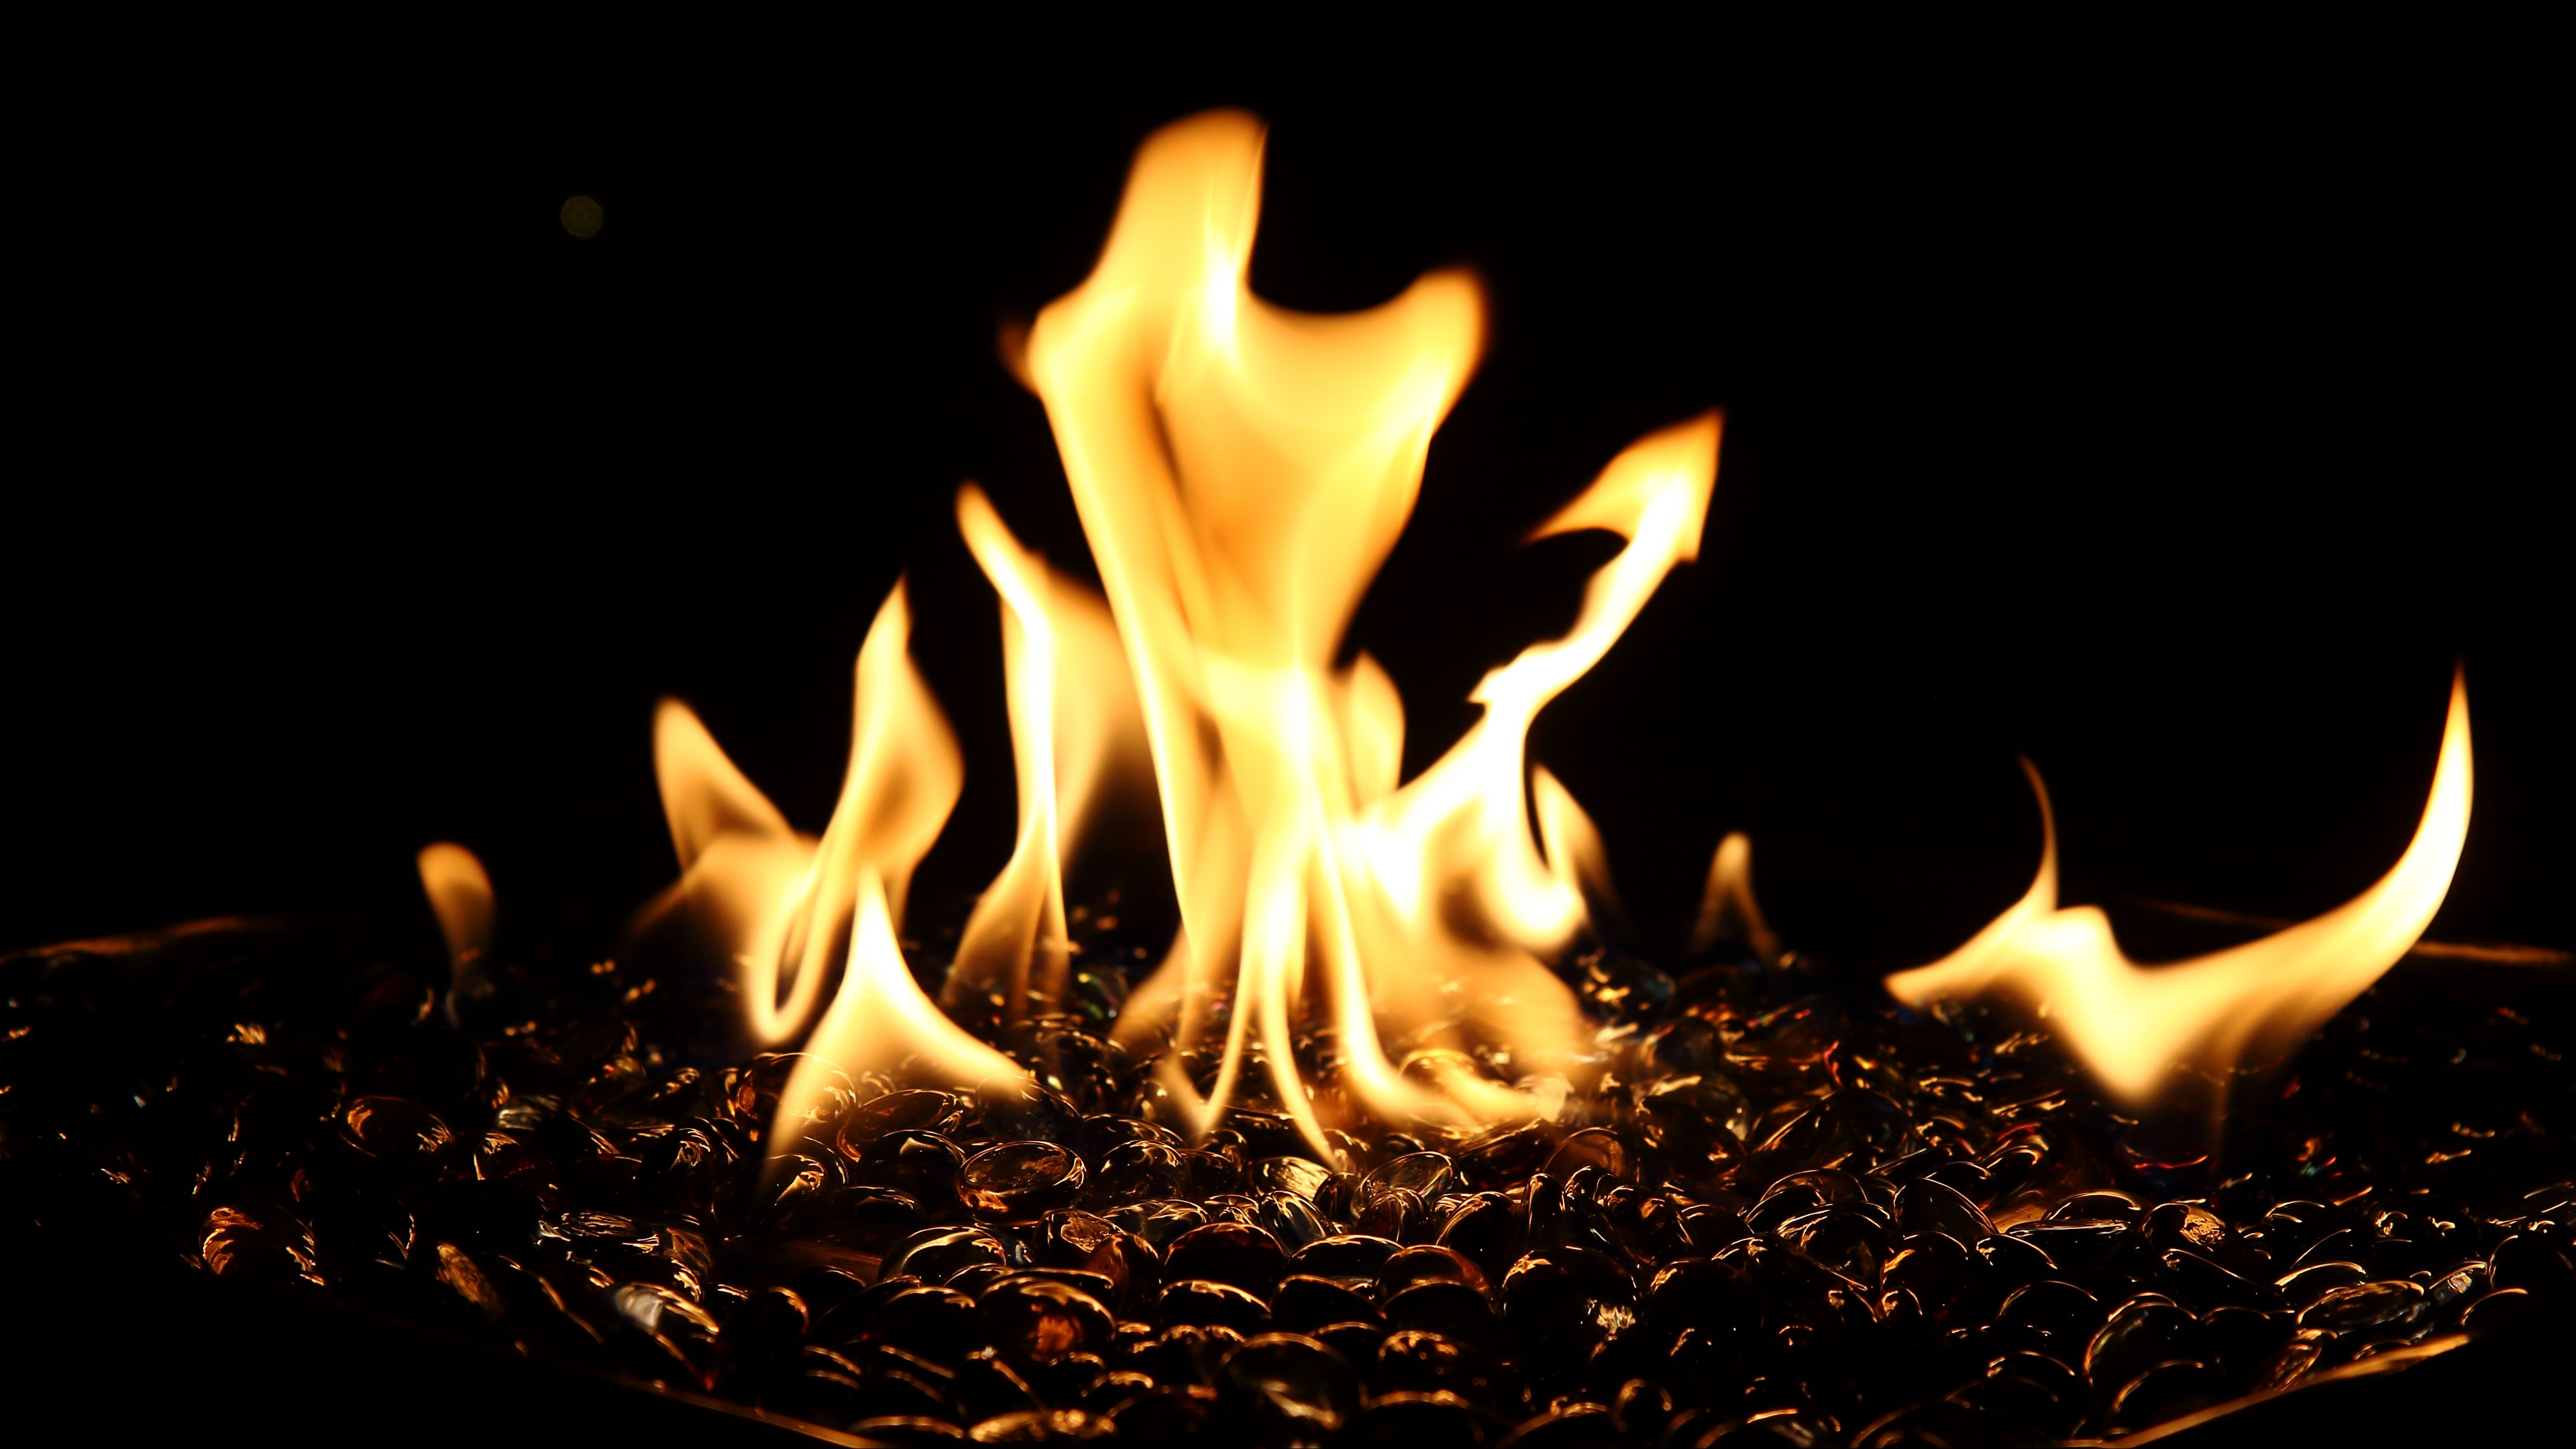 bonfire fire flame dark fiery 4k 1540575546 - bonfire, fire, flame, dark, fiery 4k - flame, Fire, bonfire